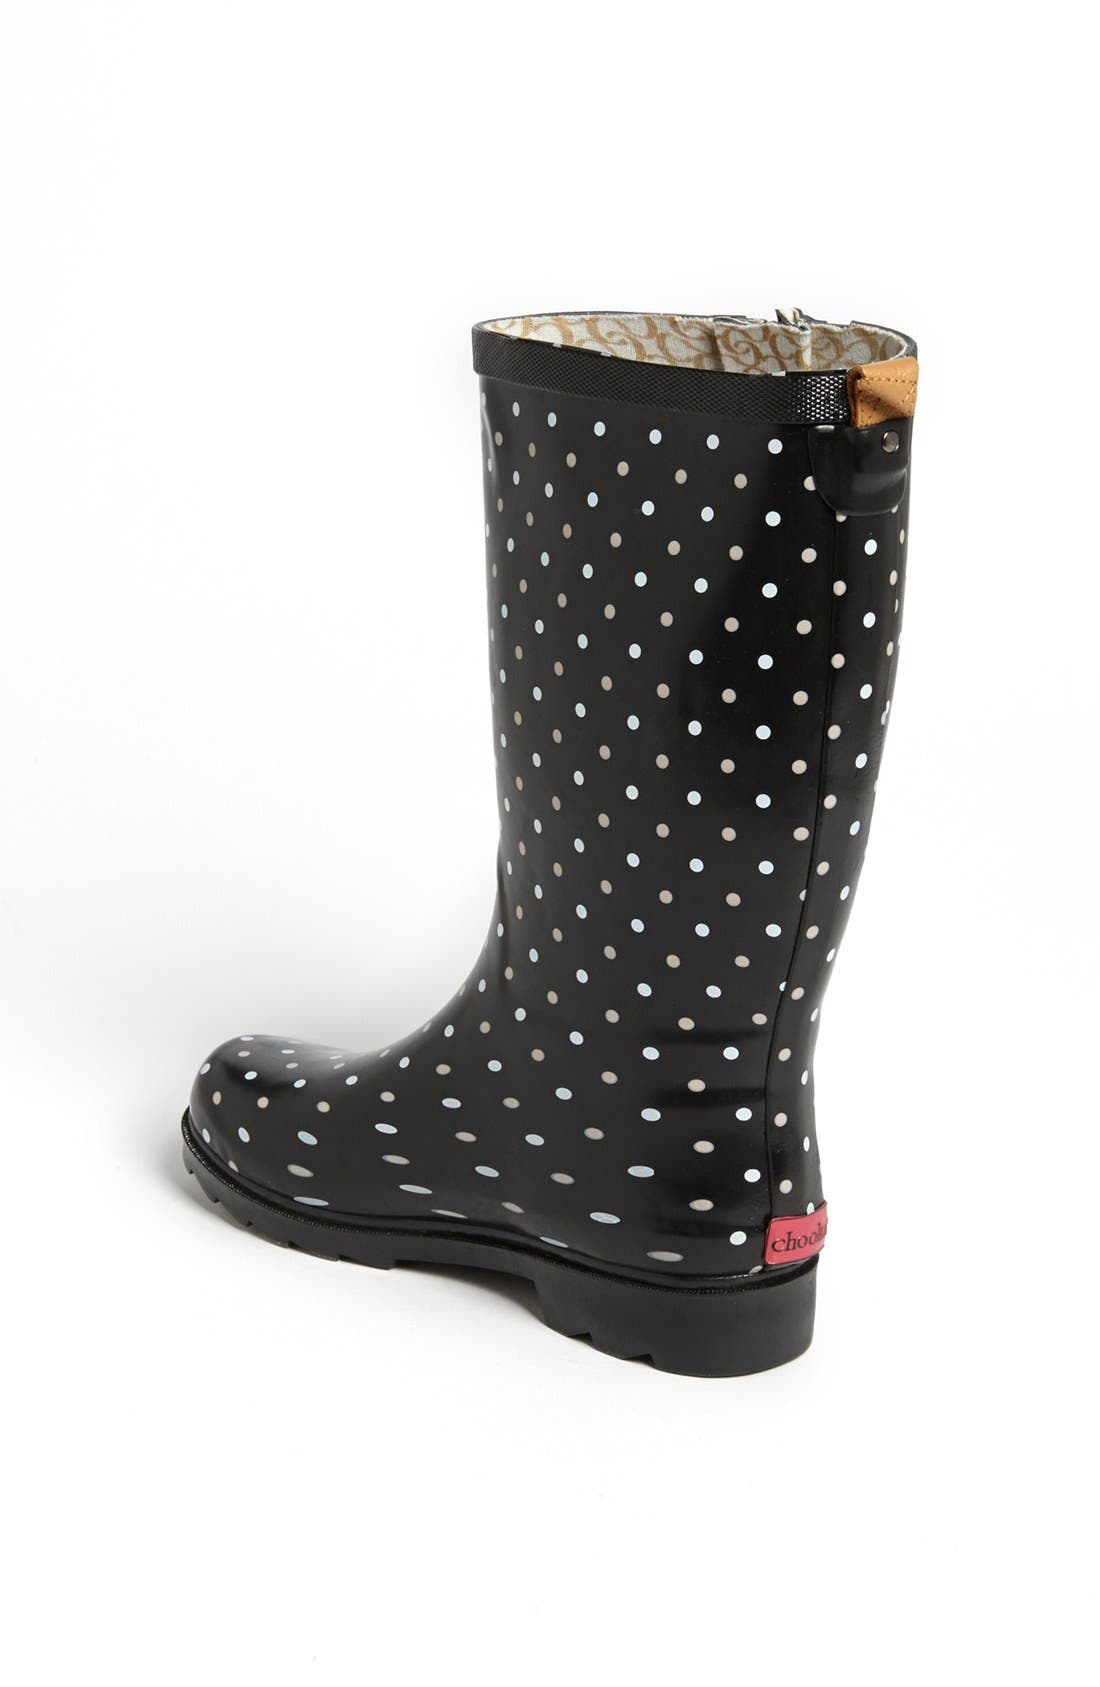 Alternate Image 2  - Chooka 'Classical Dot' Rain Boot (Women)